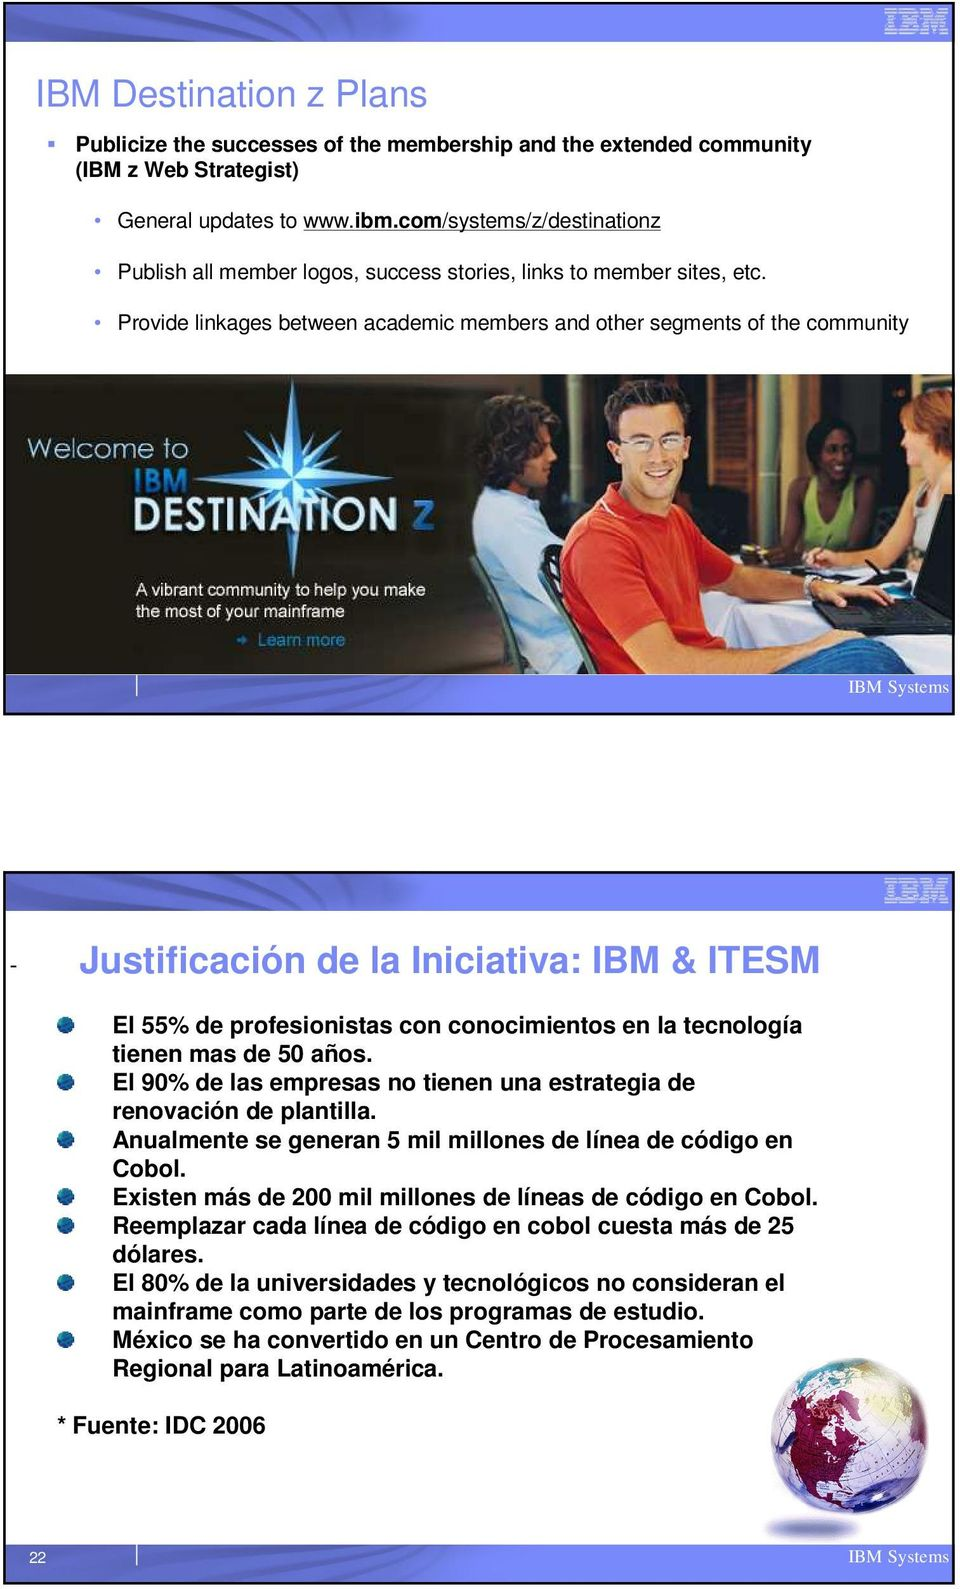 Provide linkages between academic members and other segments of the community - Justificación de la Iniciativa: IBM & ITESM El 55% de profesionistas con conocimientos en la tecnología tienen mas de